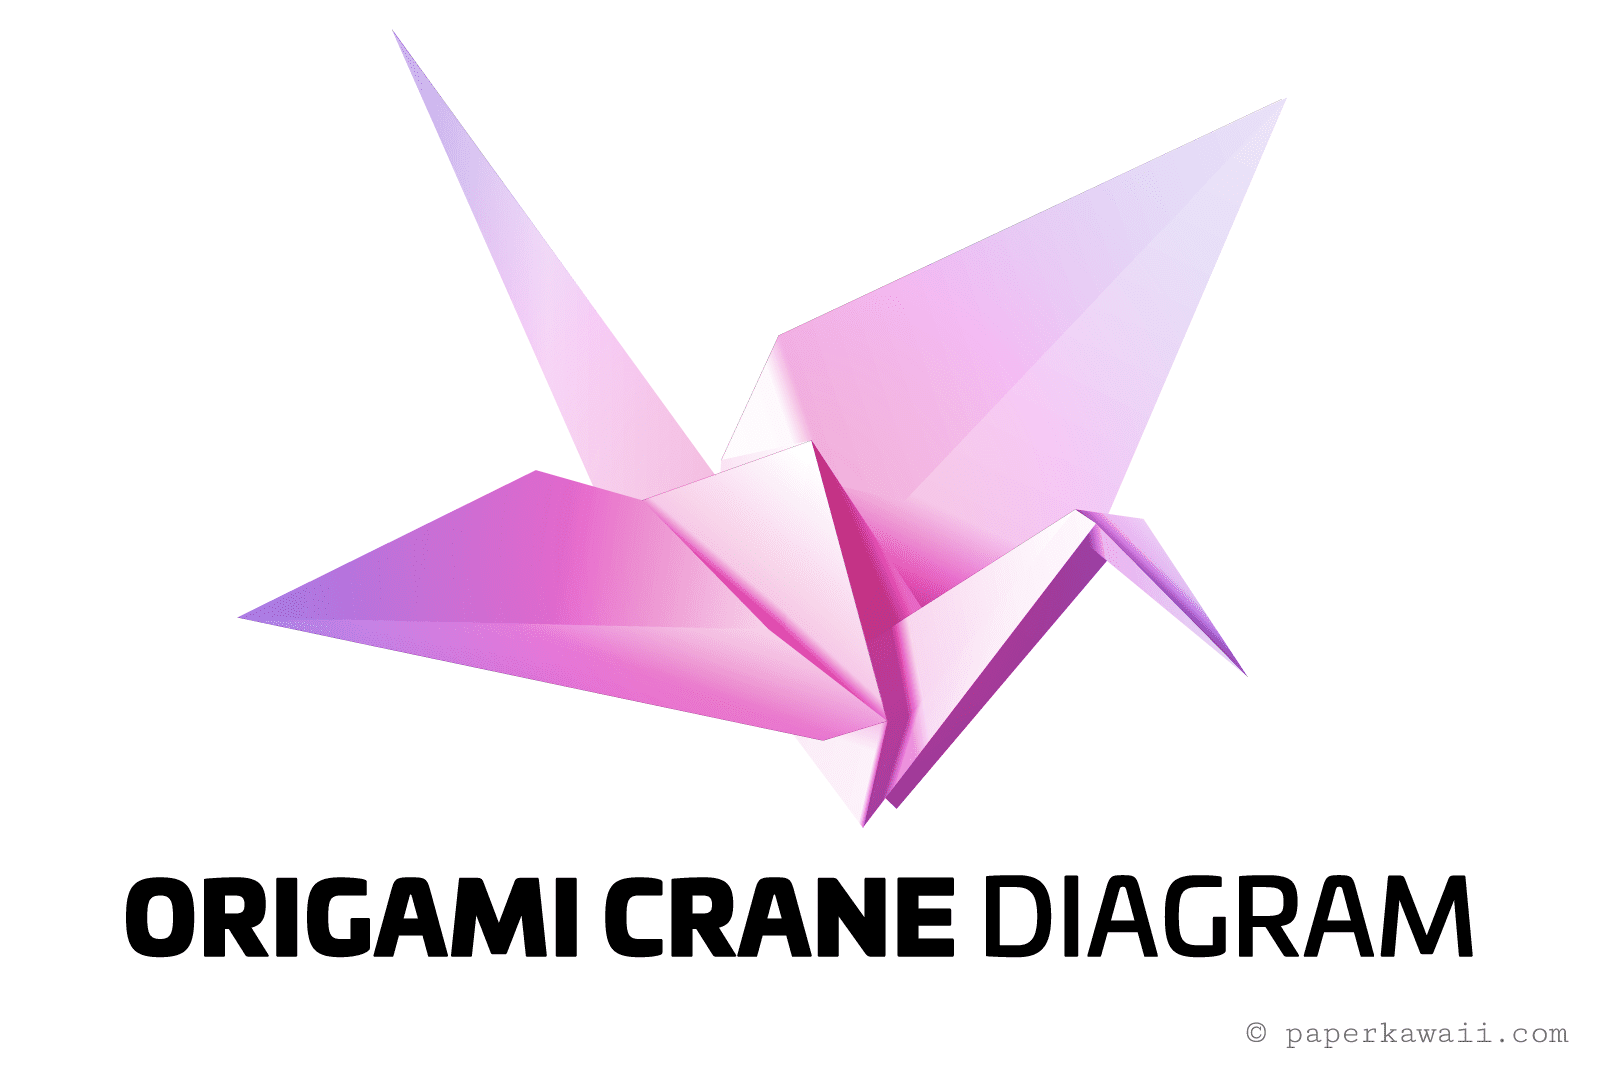 Top 10 origami projects for beginners jeuxipadfo Gallery